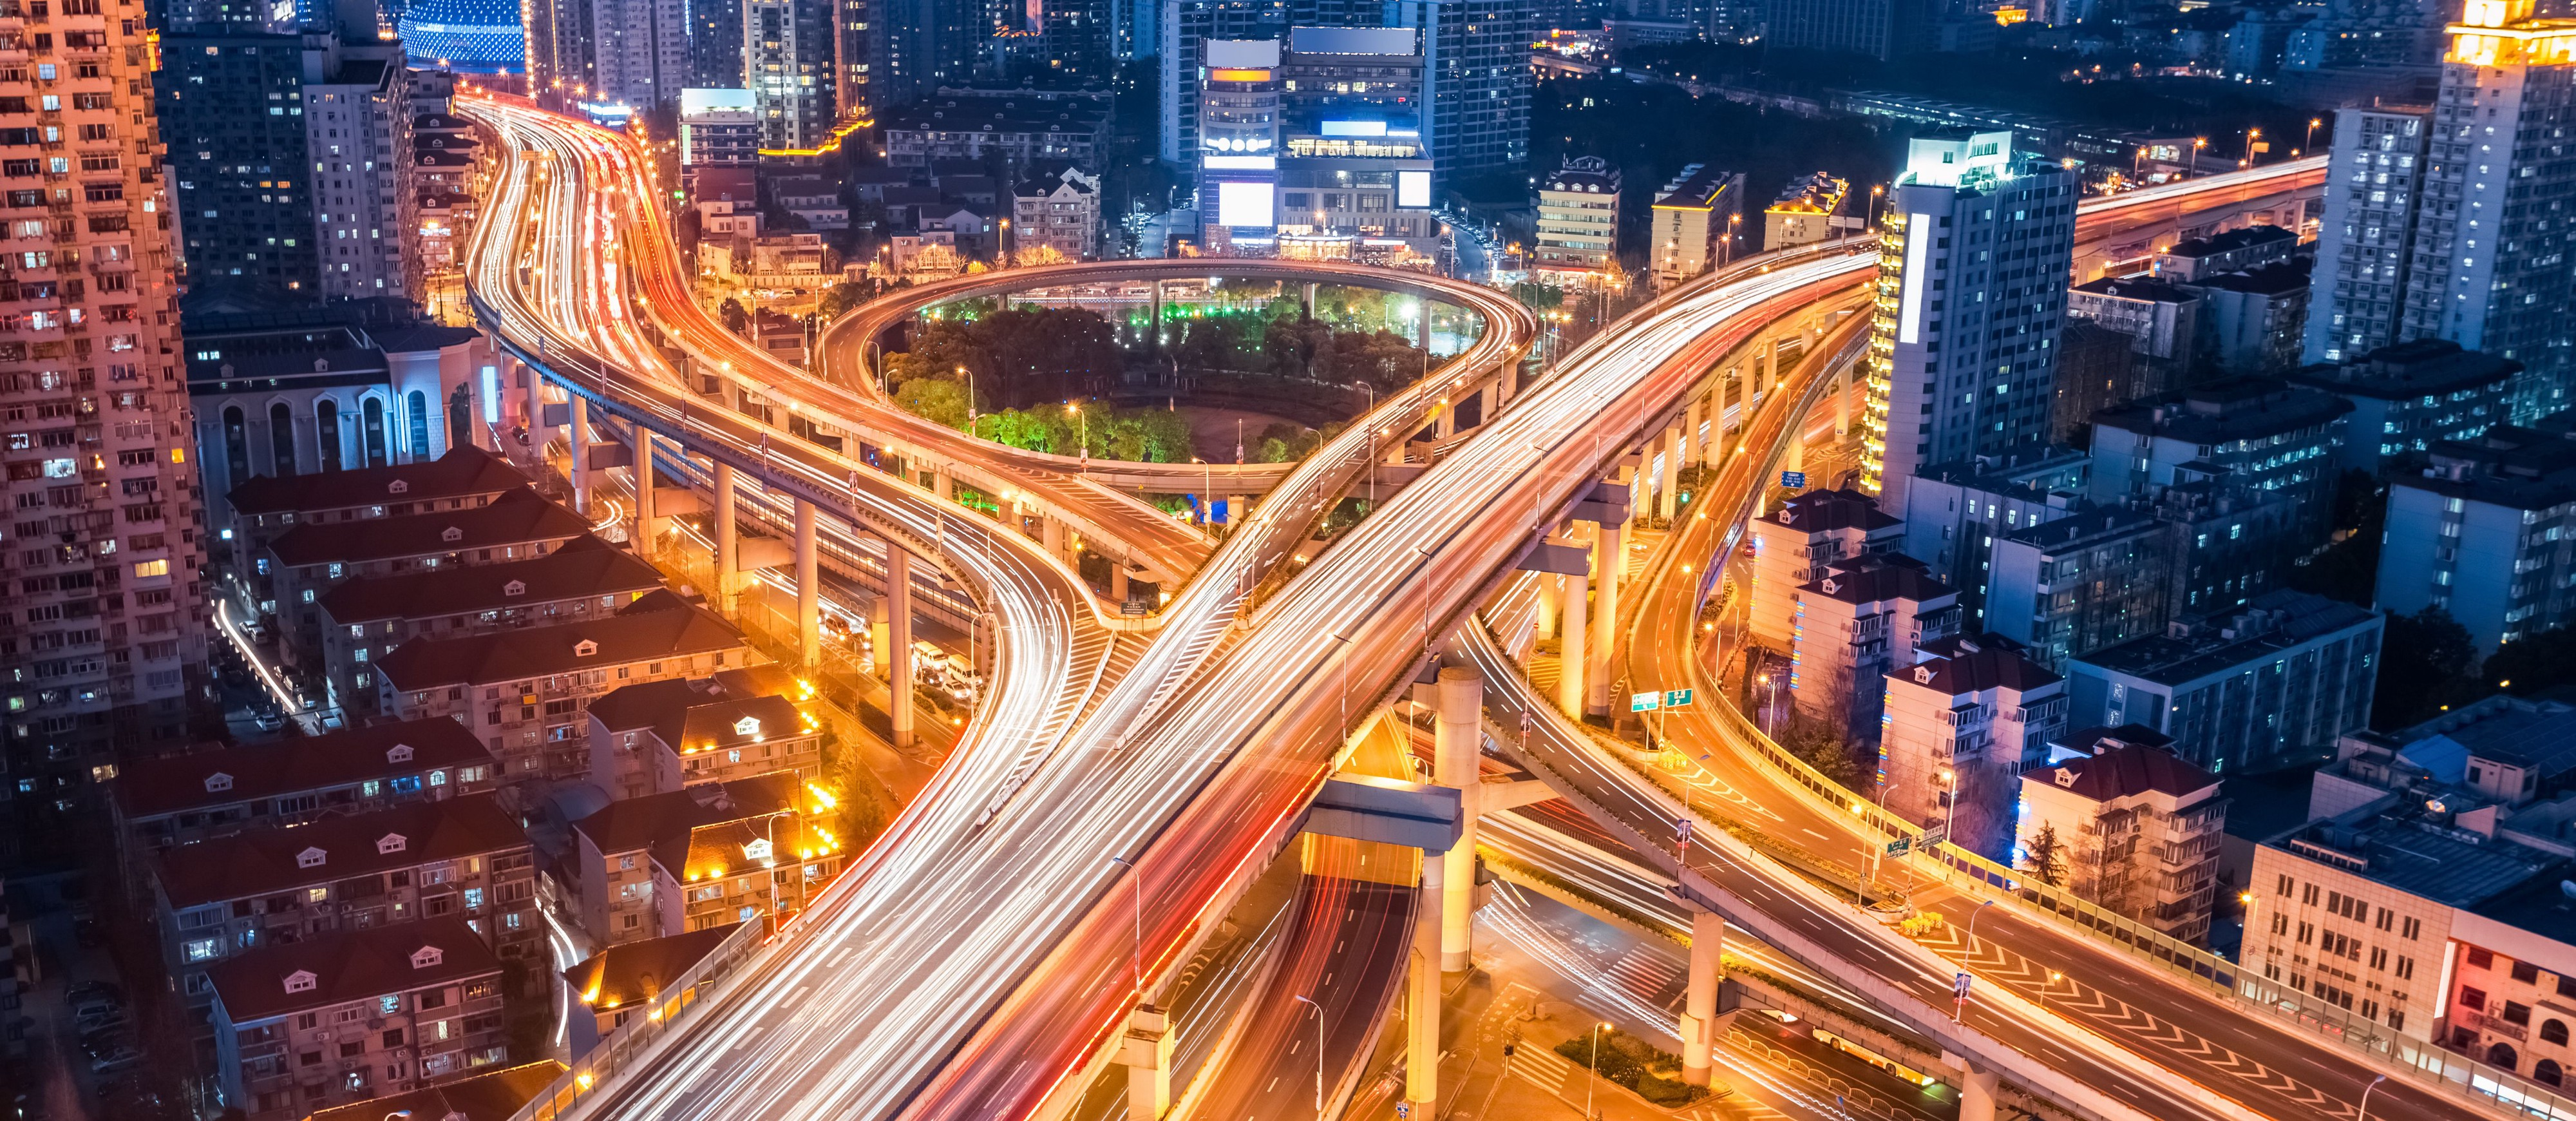 Infrastructure will be key in 2021